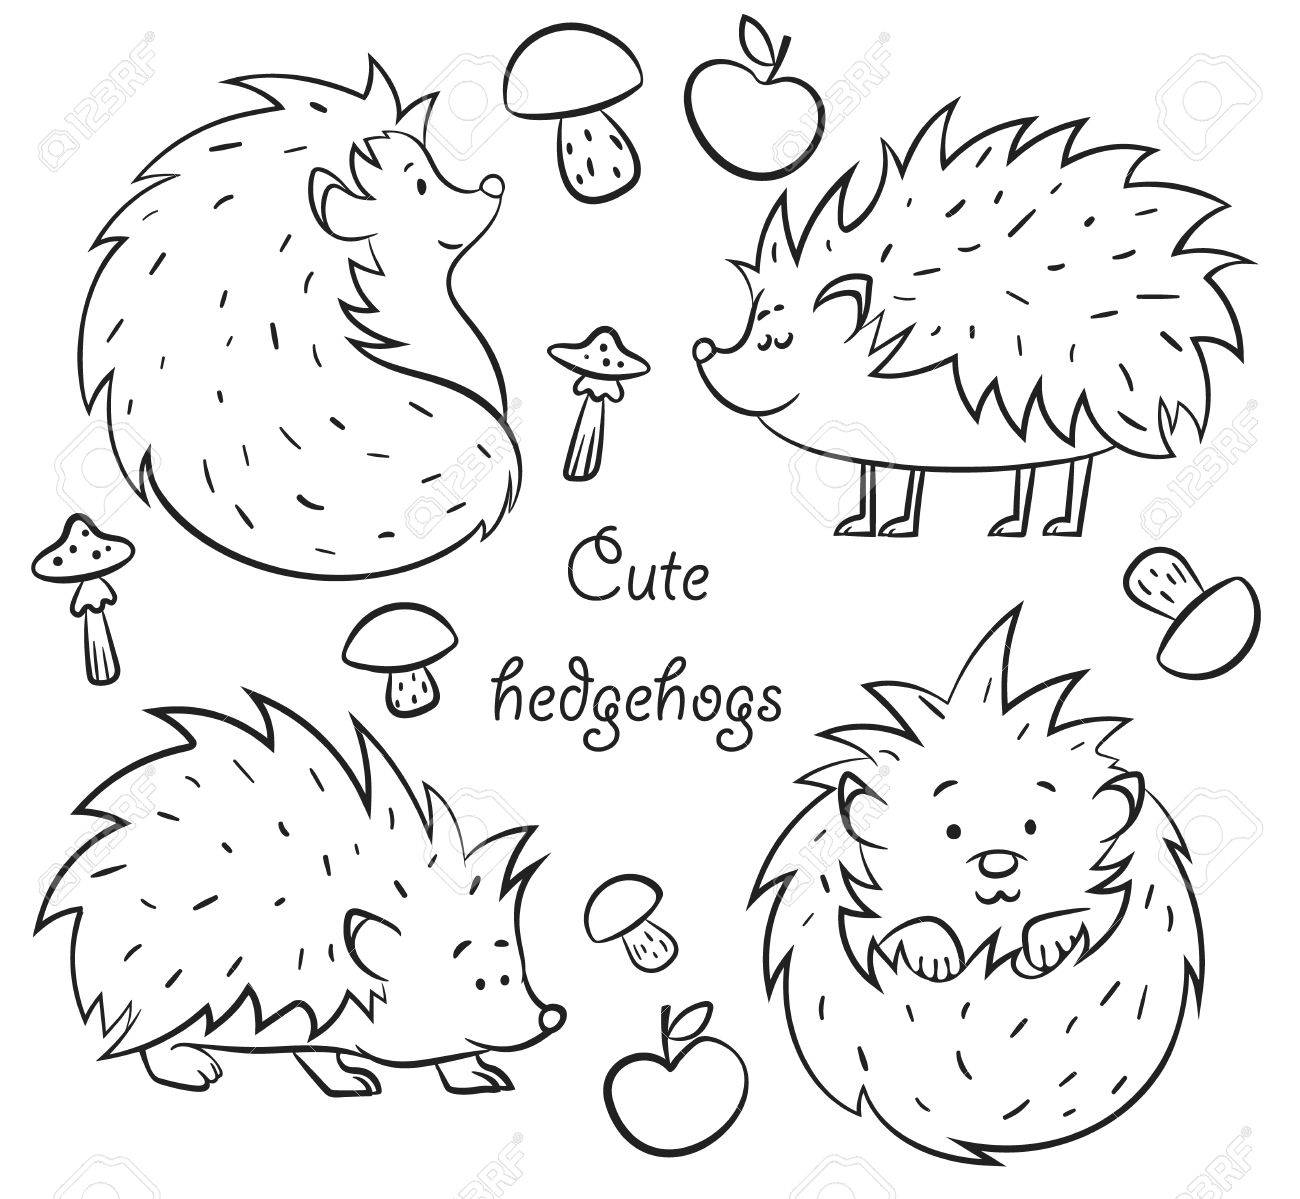 1300x1199 Four Cute Hedgehogs Set, Hand Drawn Vector Illustration Outline